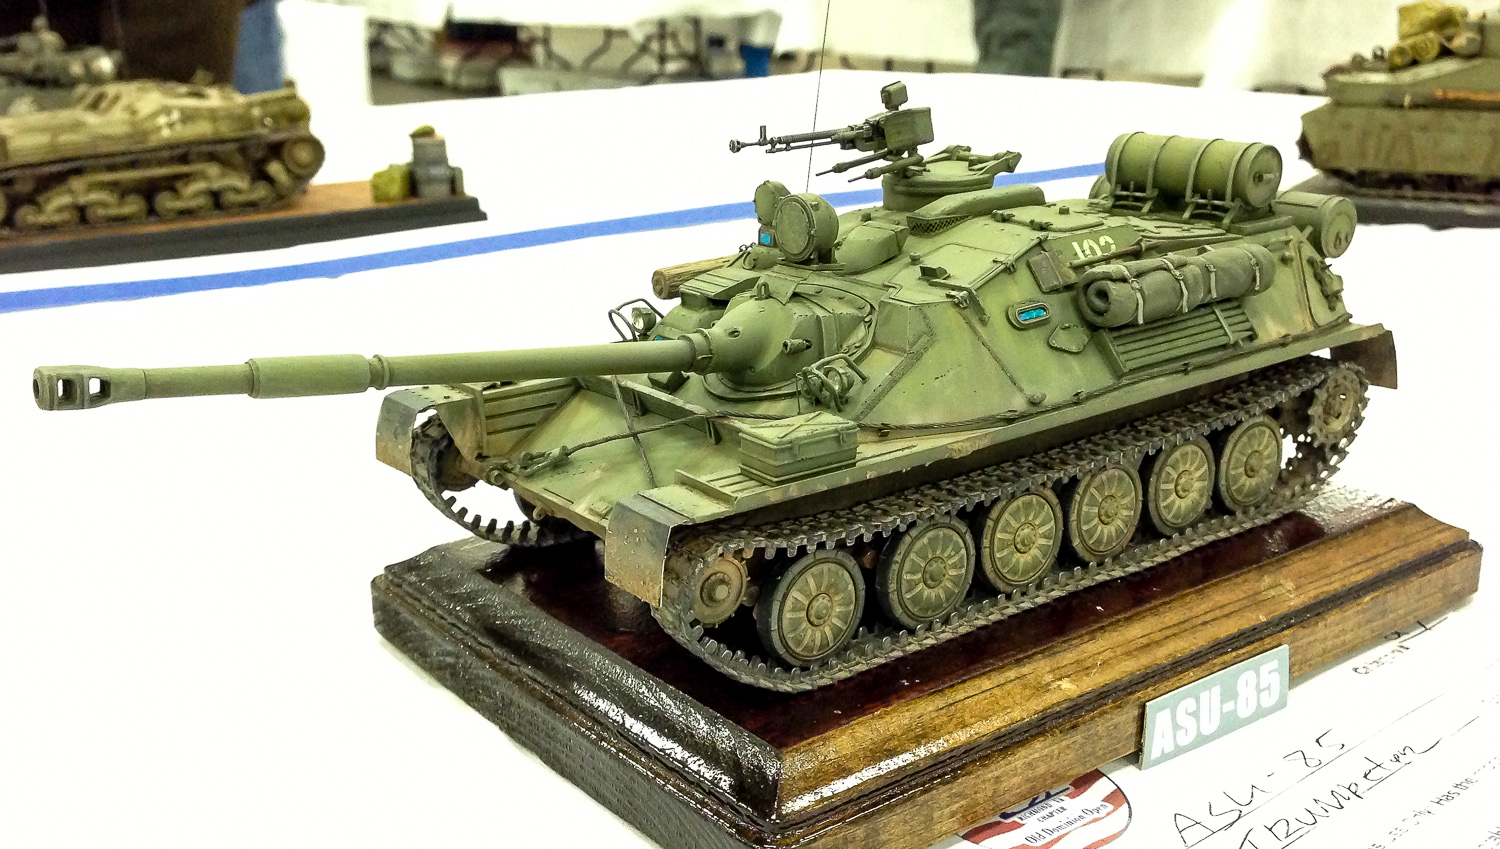 Mike Witkowski's Soviet airborne tank won a second place in its category at the ODO Saturday.